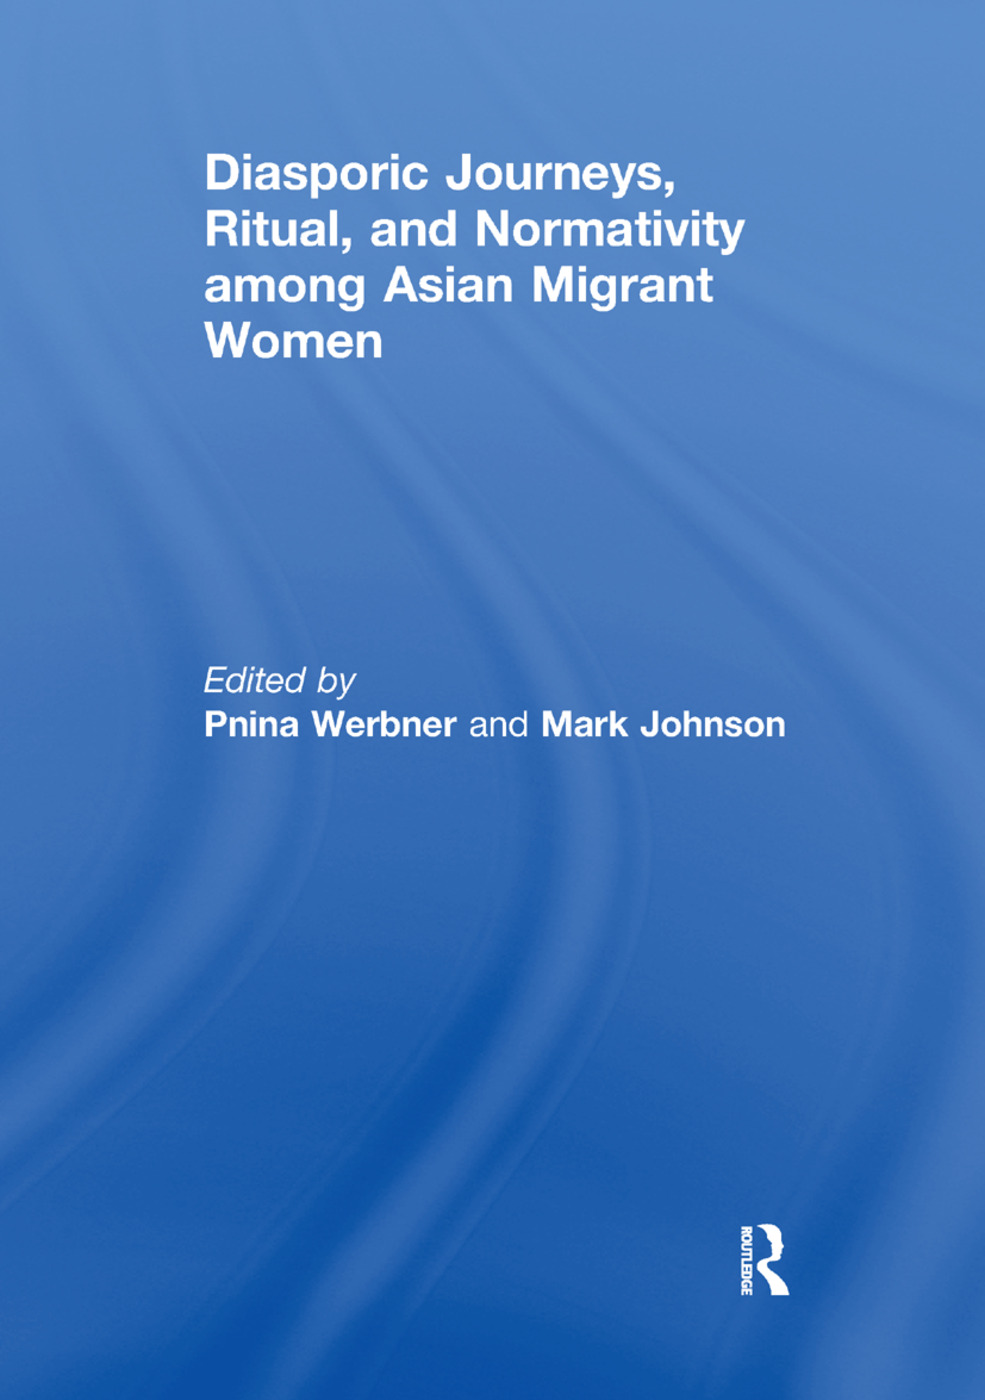 Diasporic Journeys, Ritual, and Normativity among Asian Migrant Women: 1st Edition (Paperback) book cover